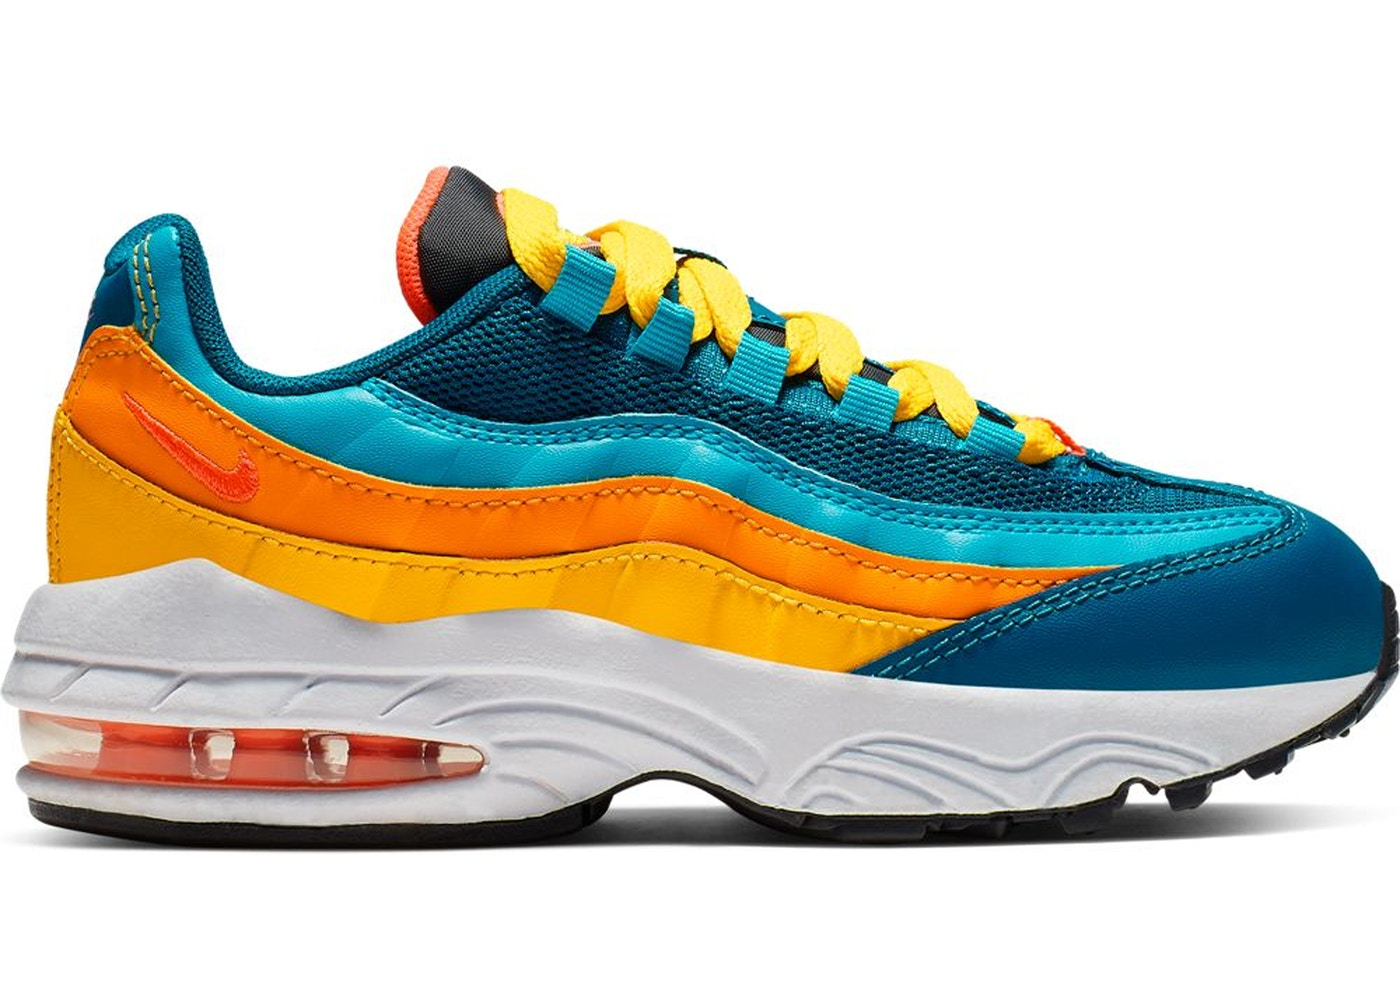 comunicación postura Mexico  Nike Air Max 95 Green Abyss Flash Crimson (PS) - CJ9990-300